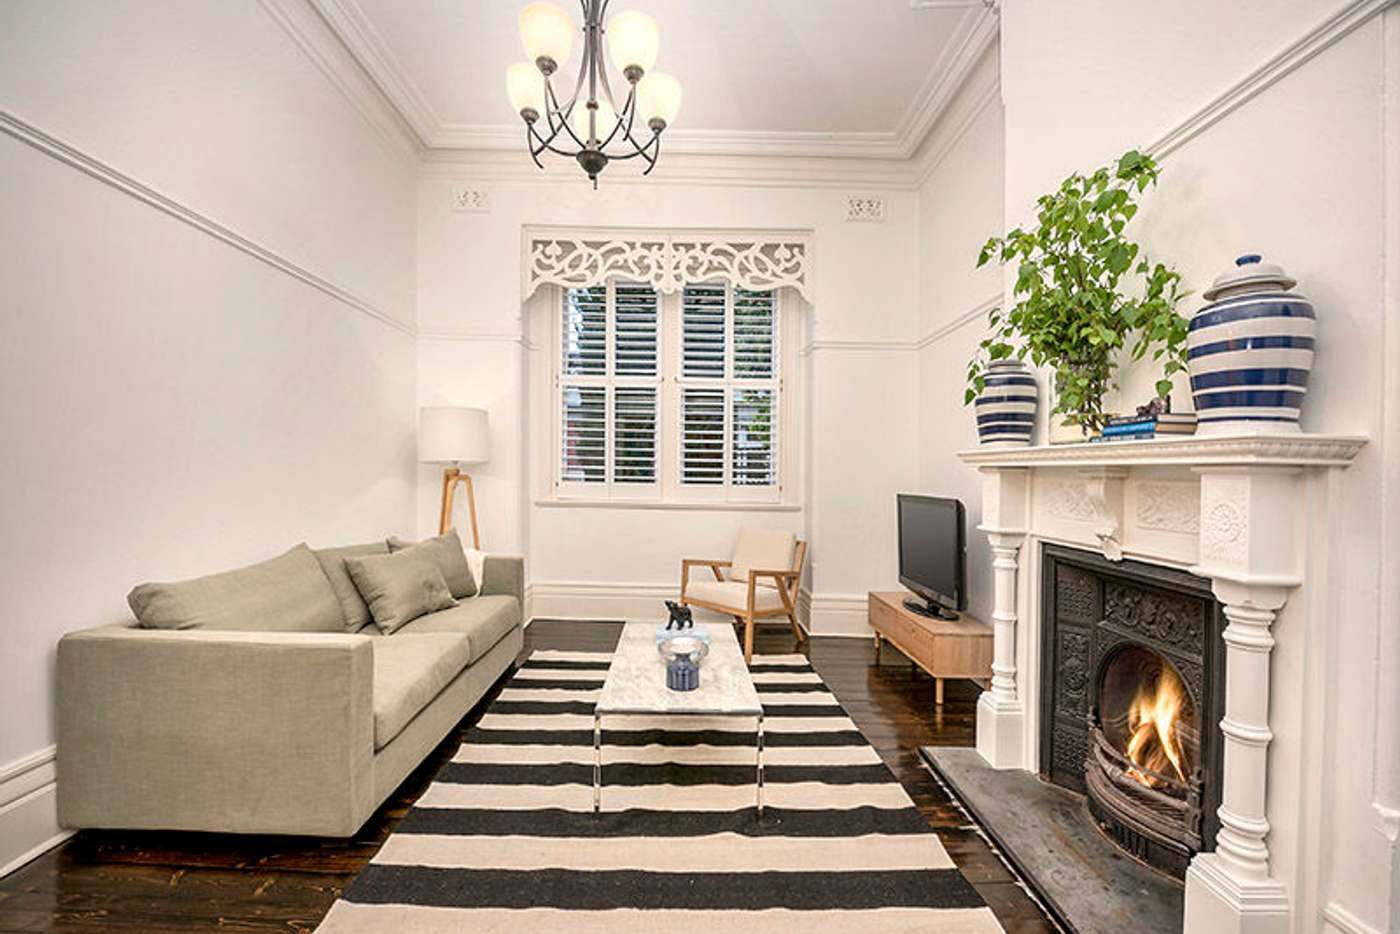 Fifth view of Homely house listing, 3 Talbot Avenue, St Kilda East VIC 3183